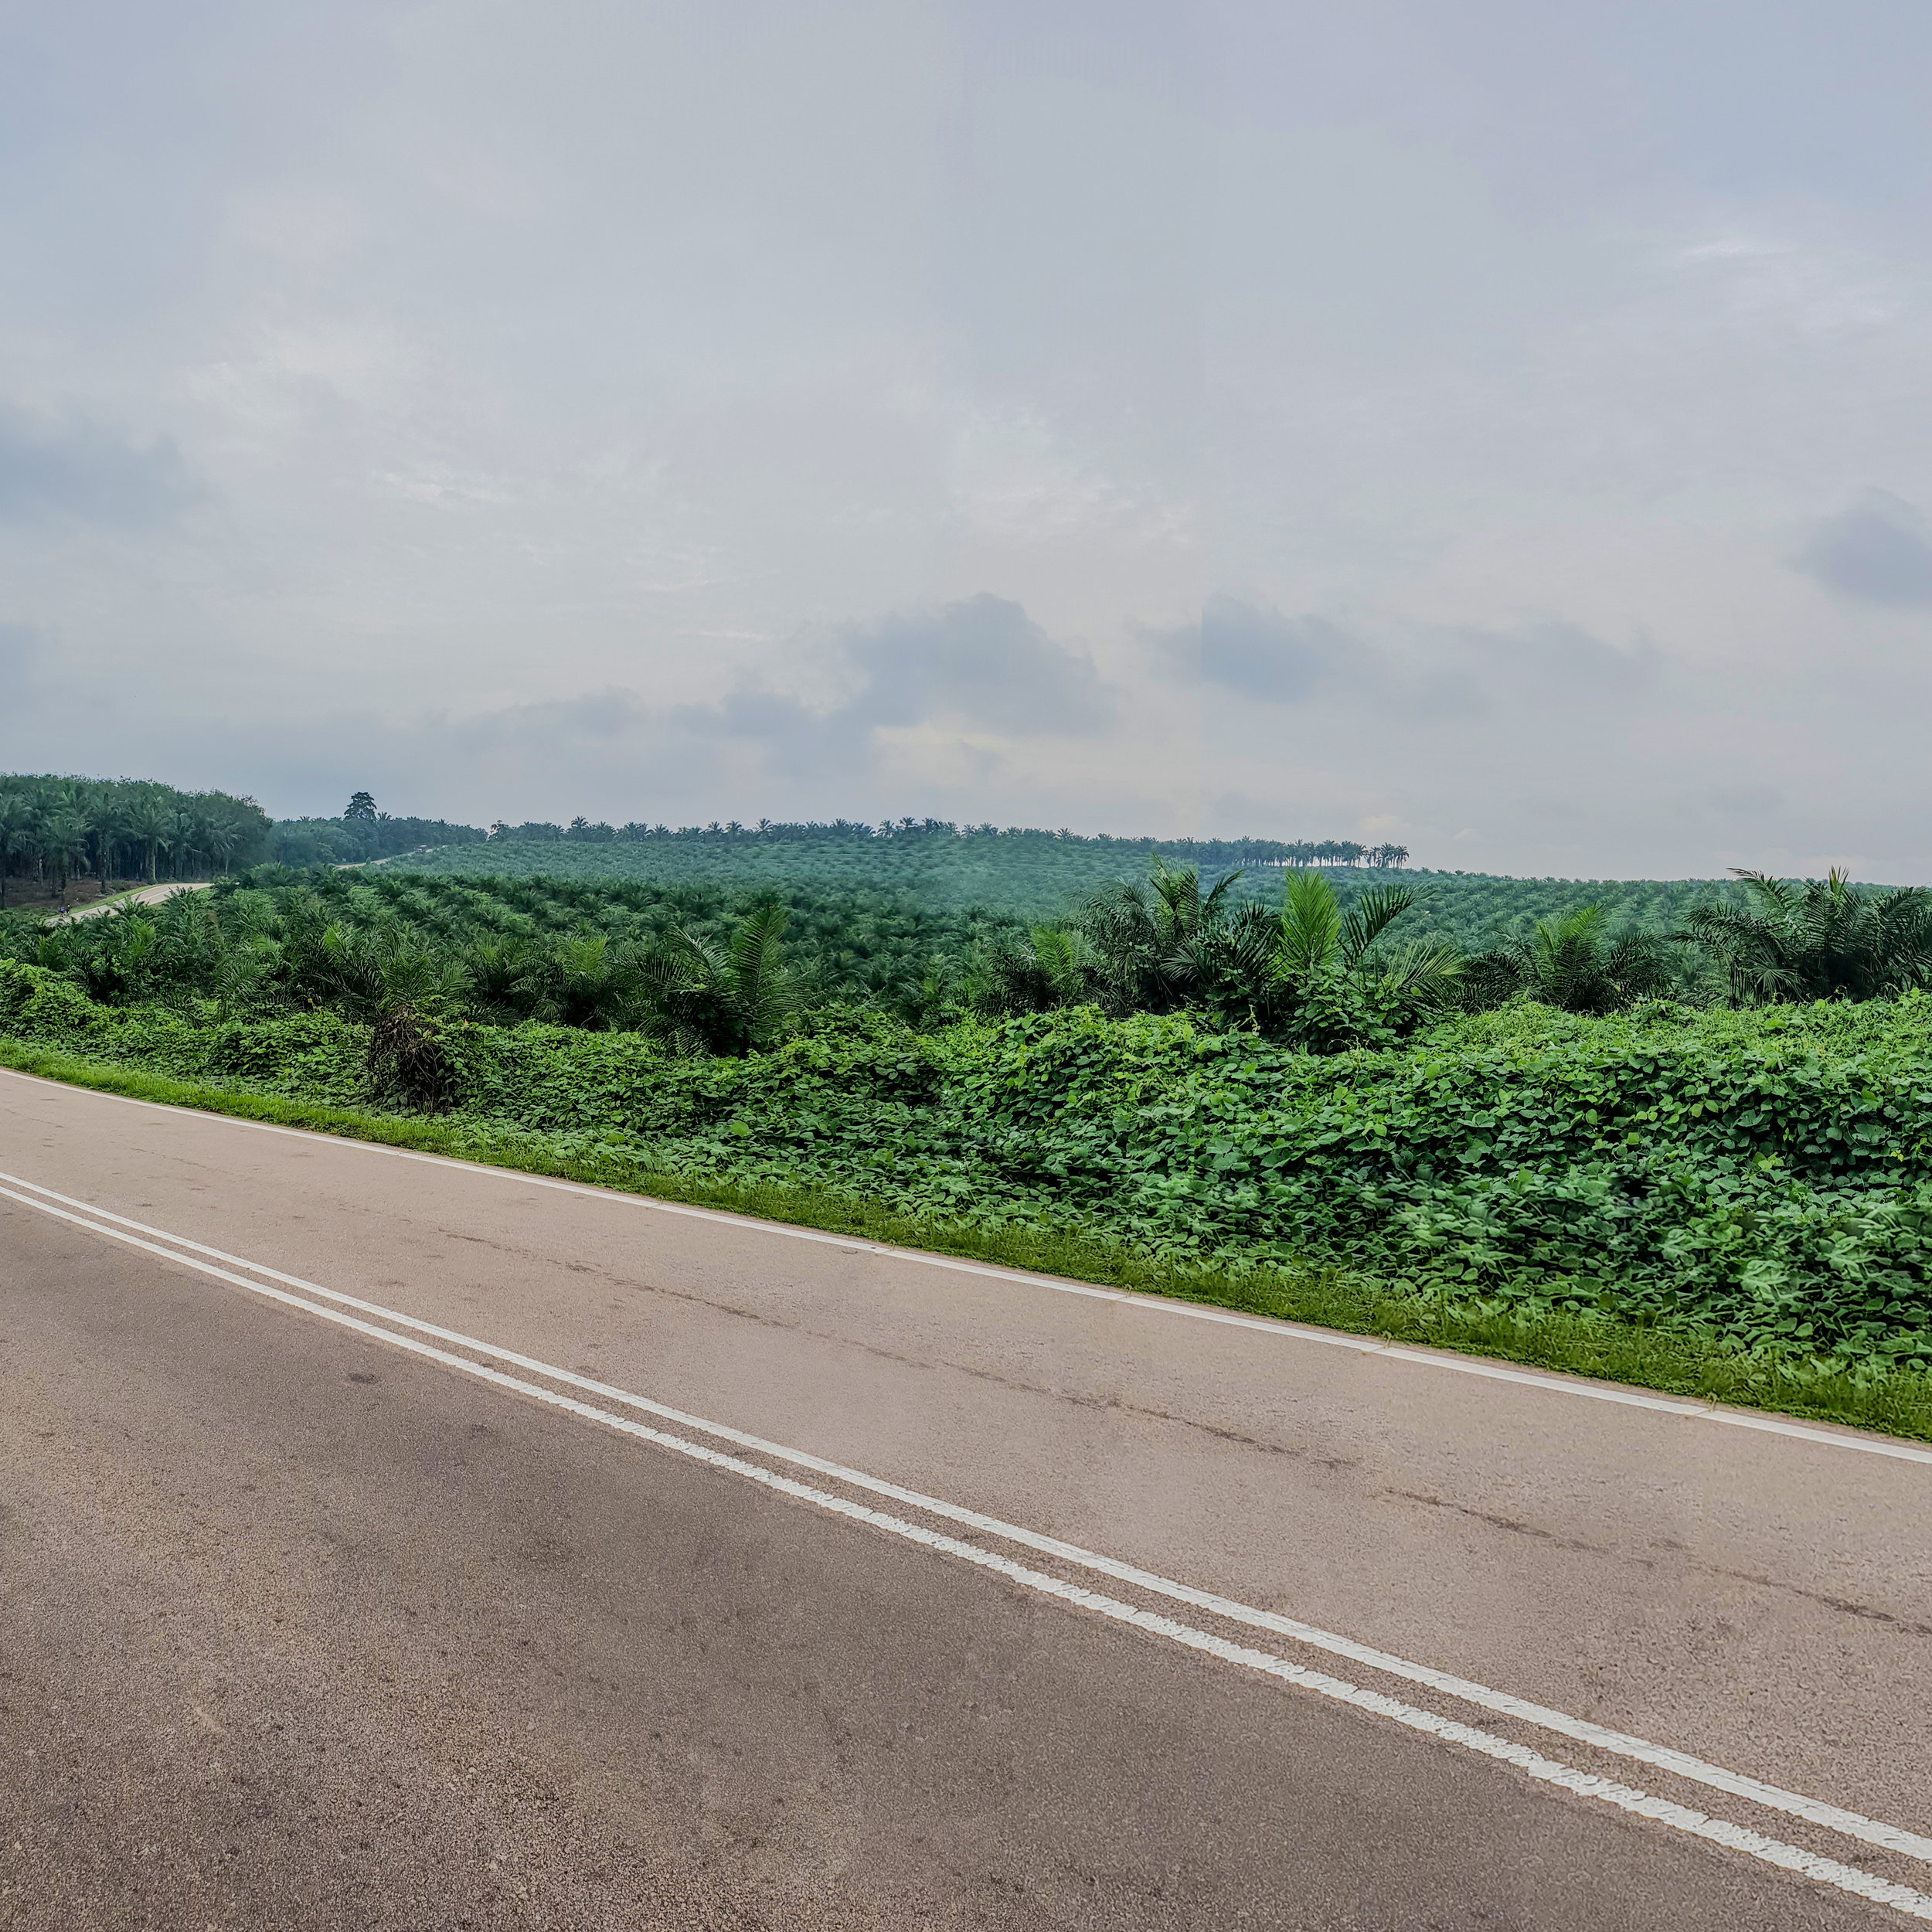 09:16 Part of the winding road and endless plantations. Parts of the journey will be covered in a cooling morning mist (which we did not capture on the way into Paloh) if you set off from Yong Peng as early as we did.